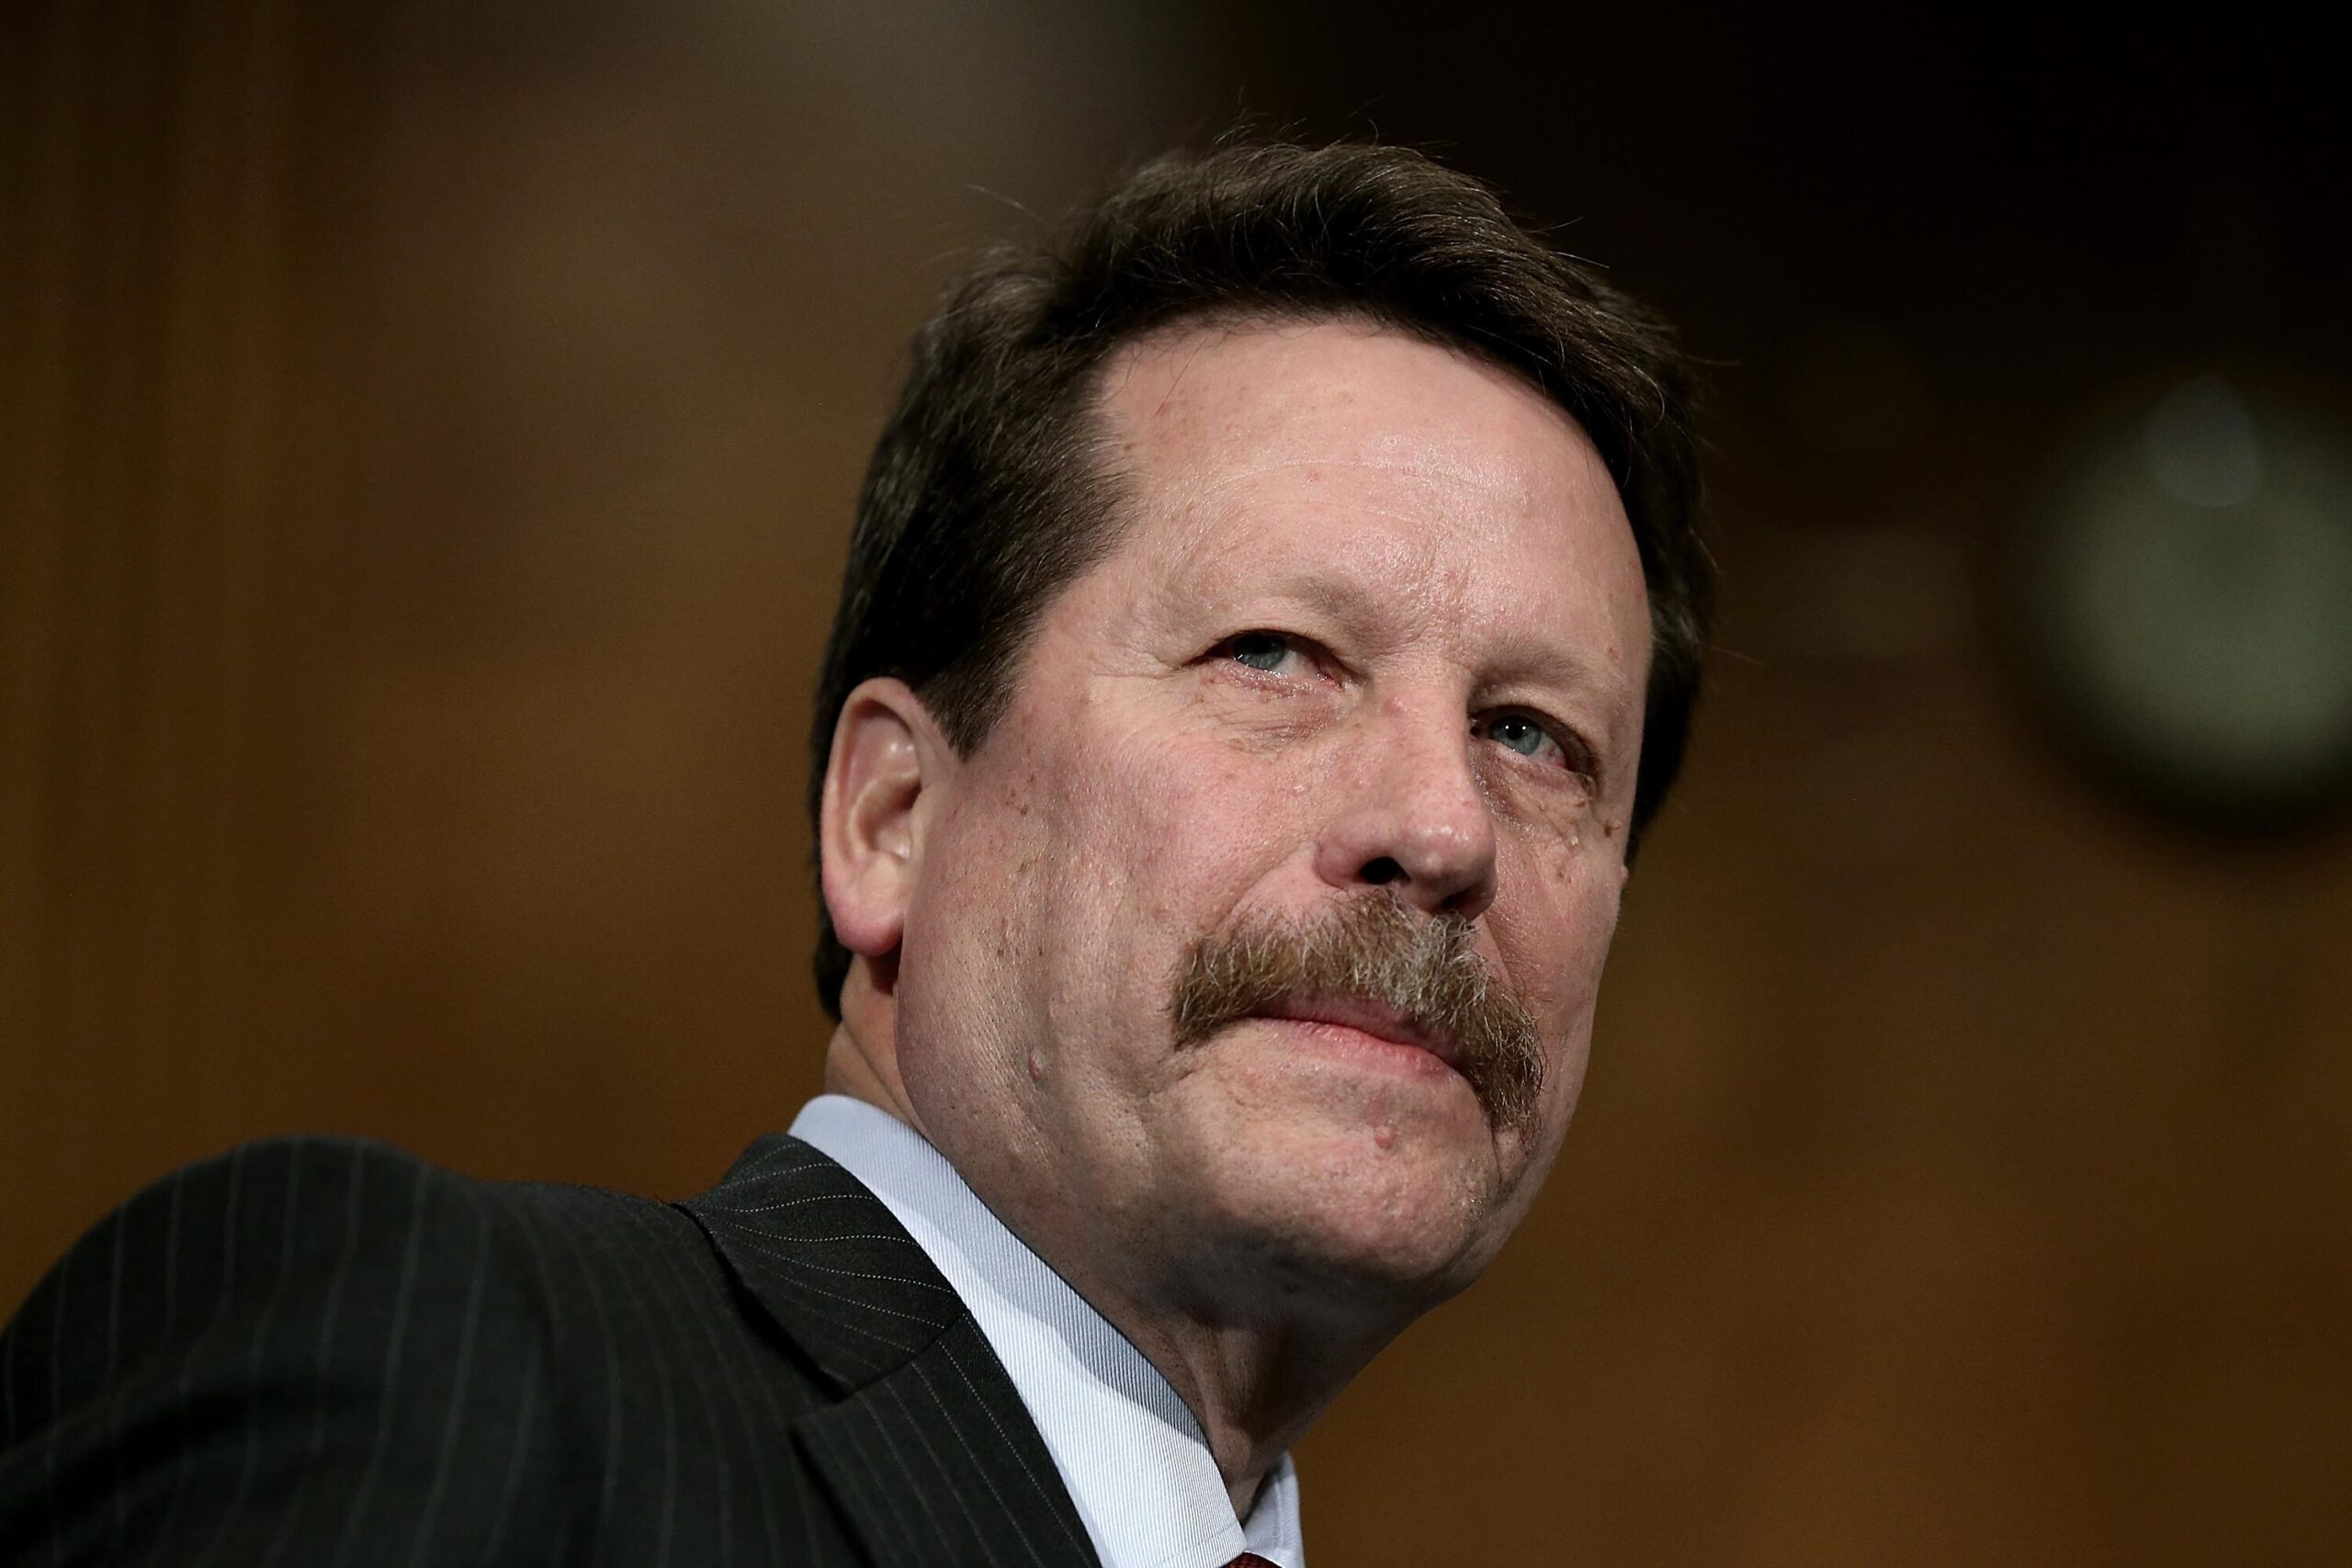 <i>Win McNamee/Getty Images</i><br/>The White House is in the process of vetting former Food and Drug Administration Commissioner Rob Califf to become the agency's leader once again. Califf is shown here on November 17